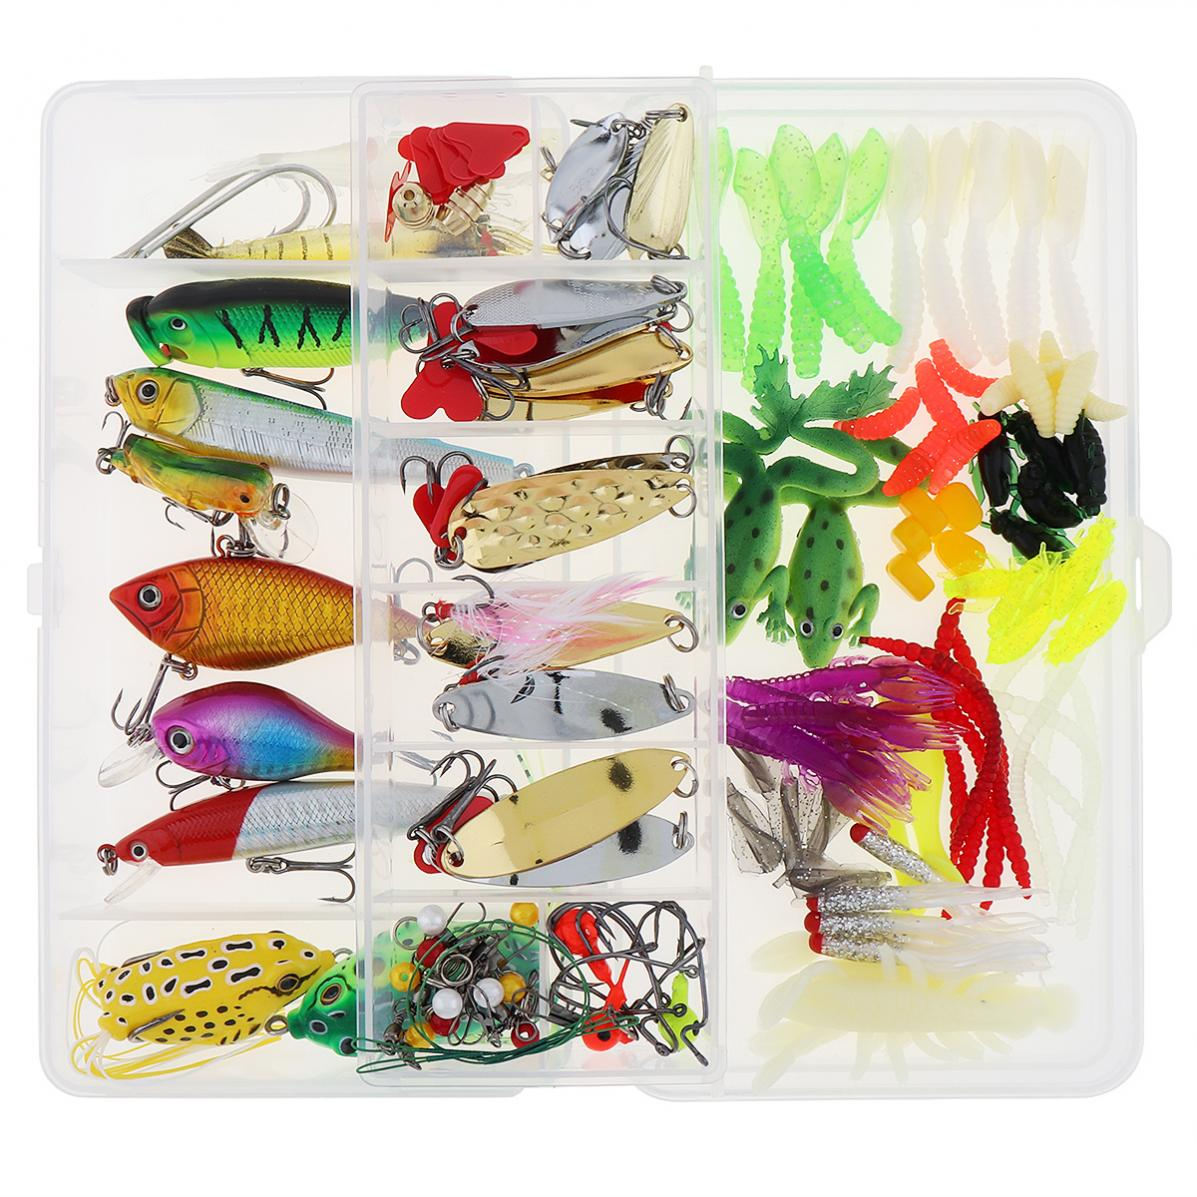 Fishing lure set kit lots with tackle box fishing lures for Fishing lure kits